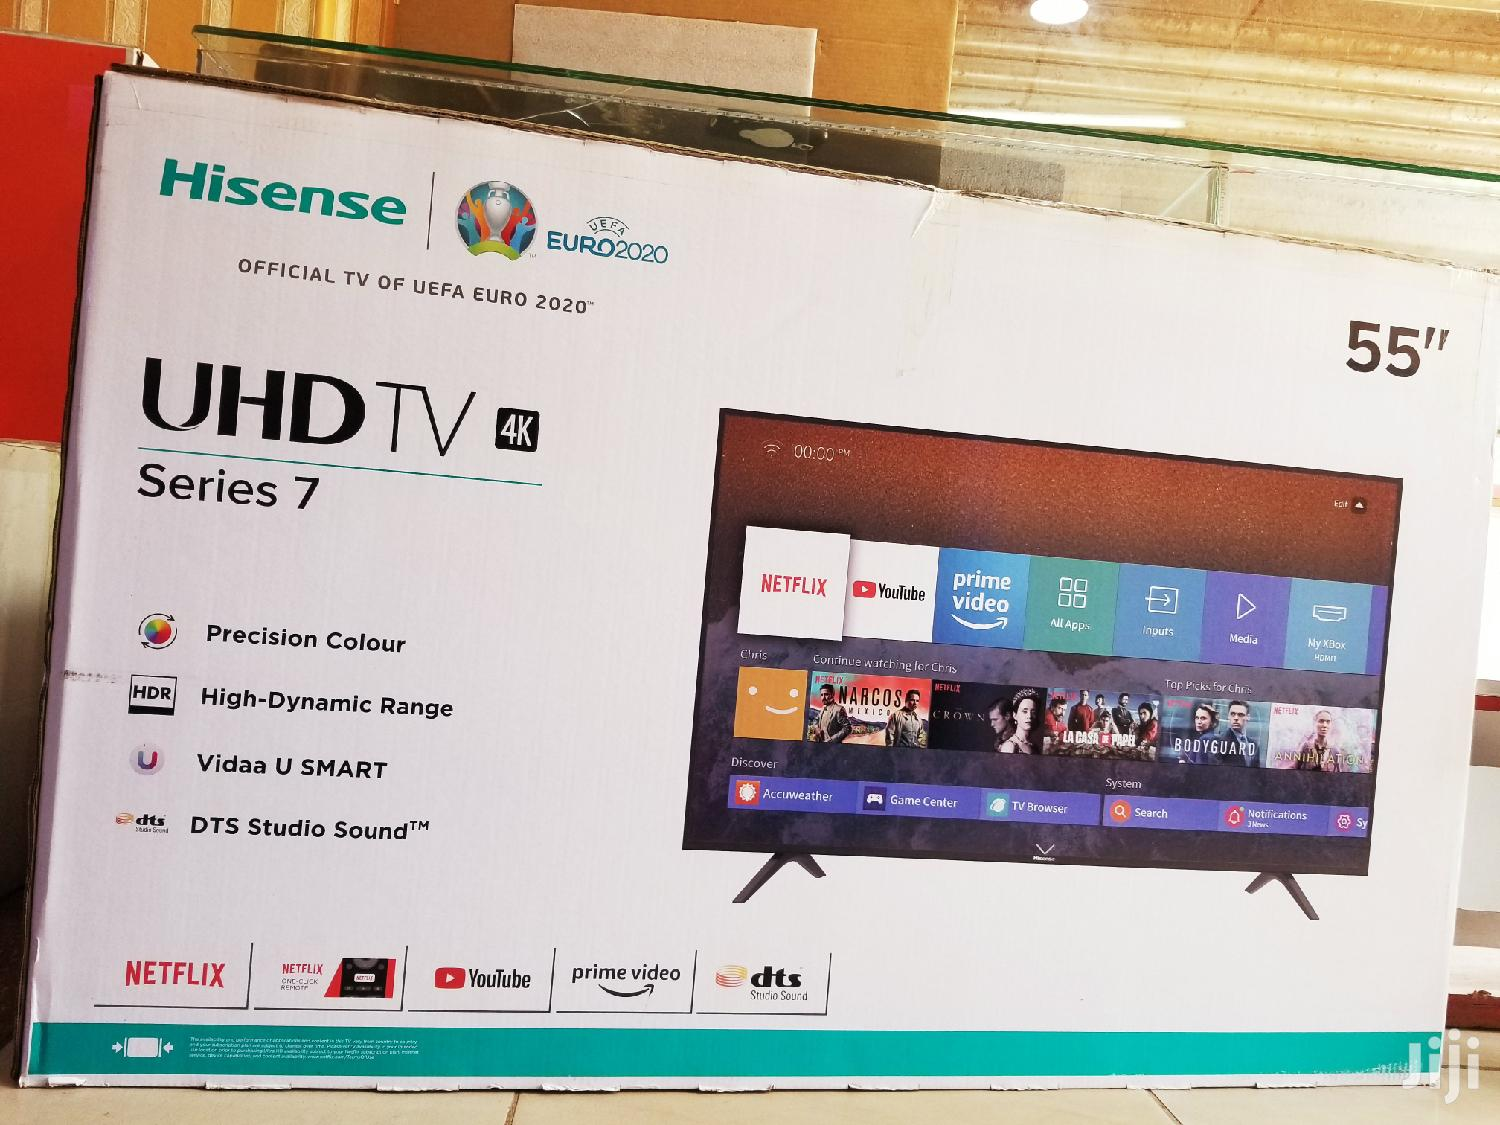 Hisense TV Flatscreen 55 Inches Smart